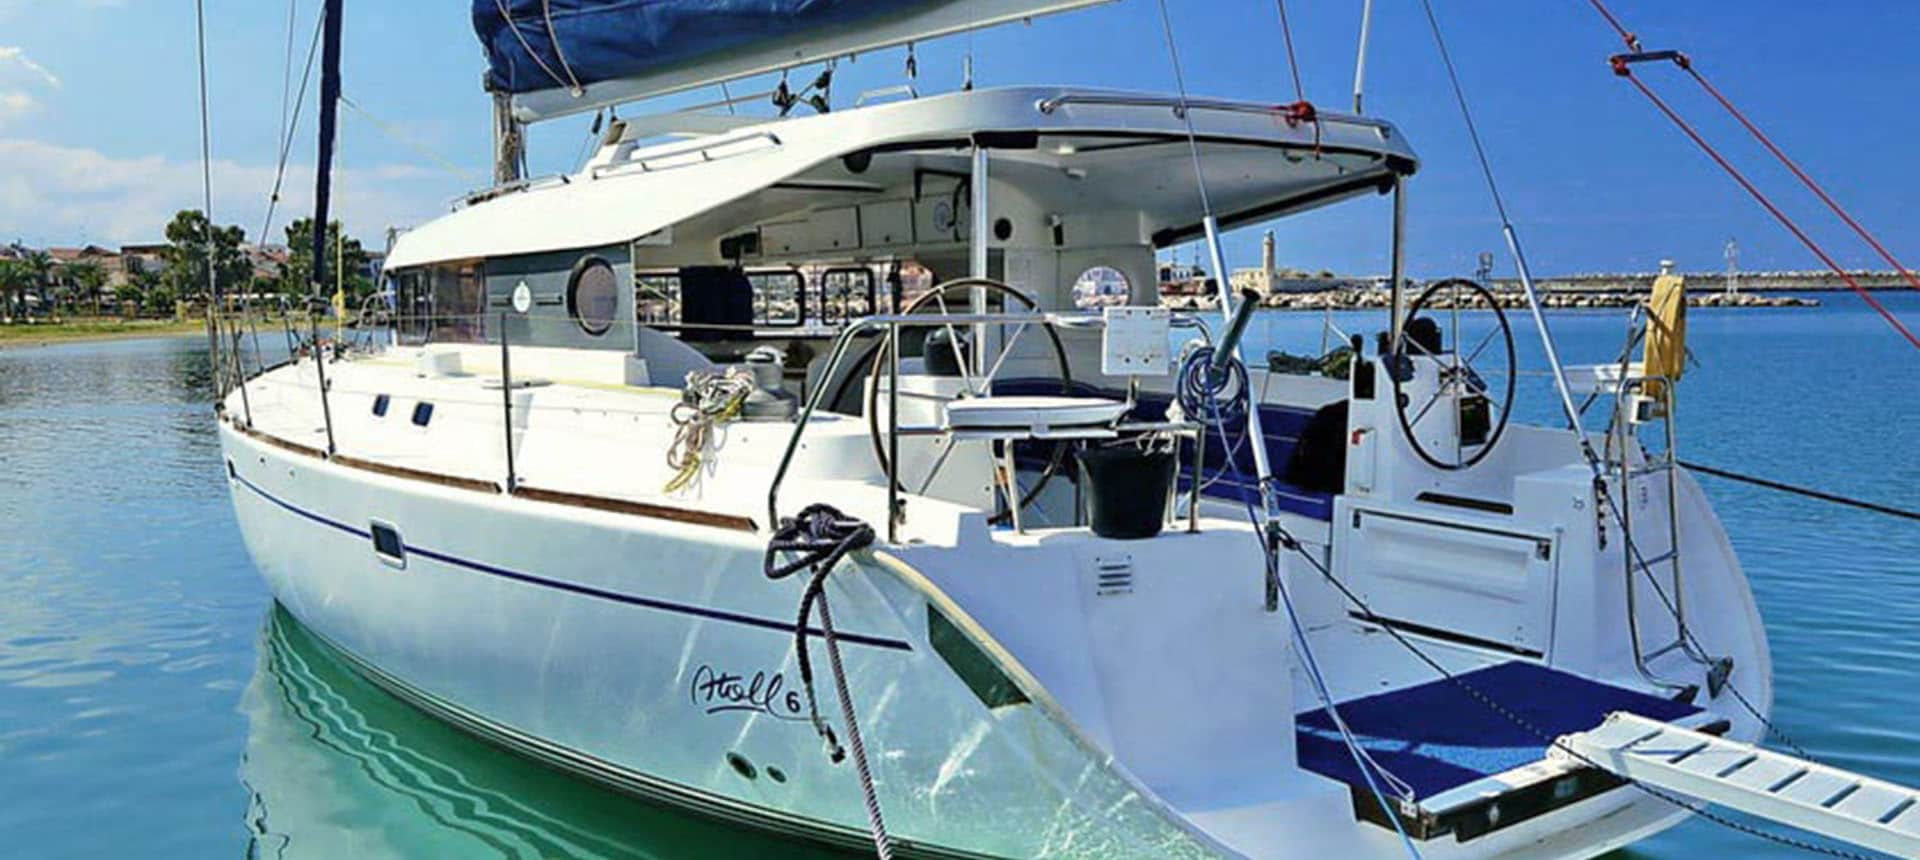 sailing holiday in crete